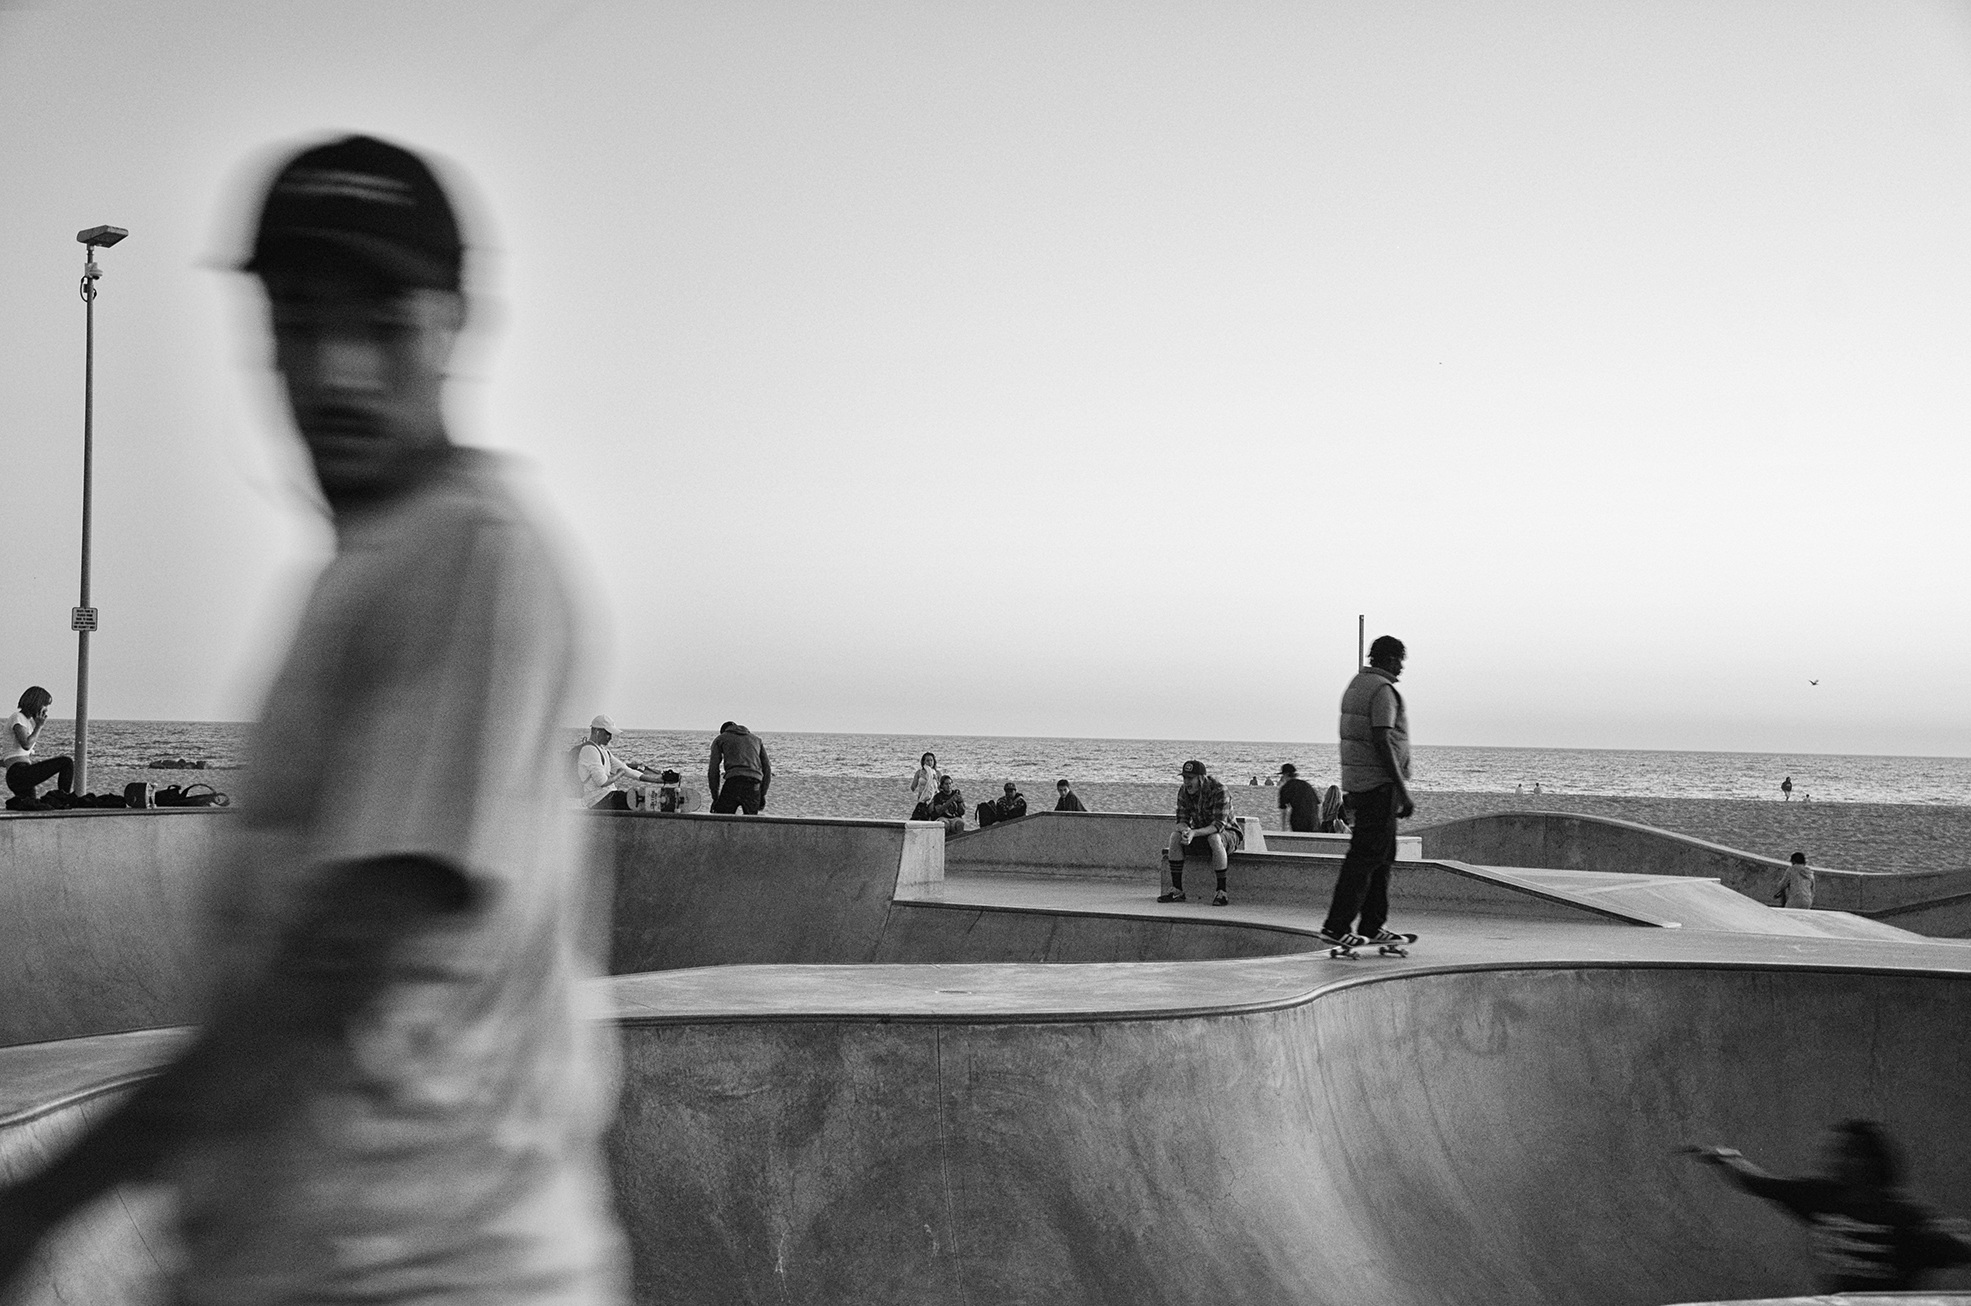 05_Last-seen-at-Venice-Skate-Park,-Venice-Beach,-LA